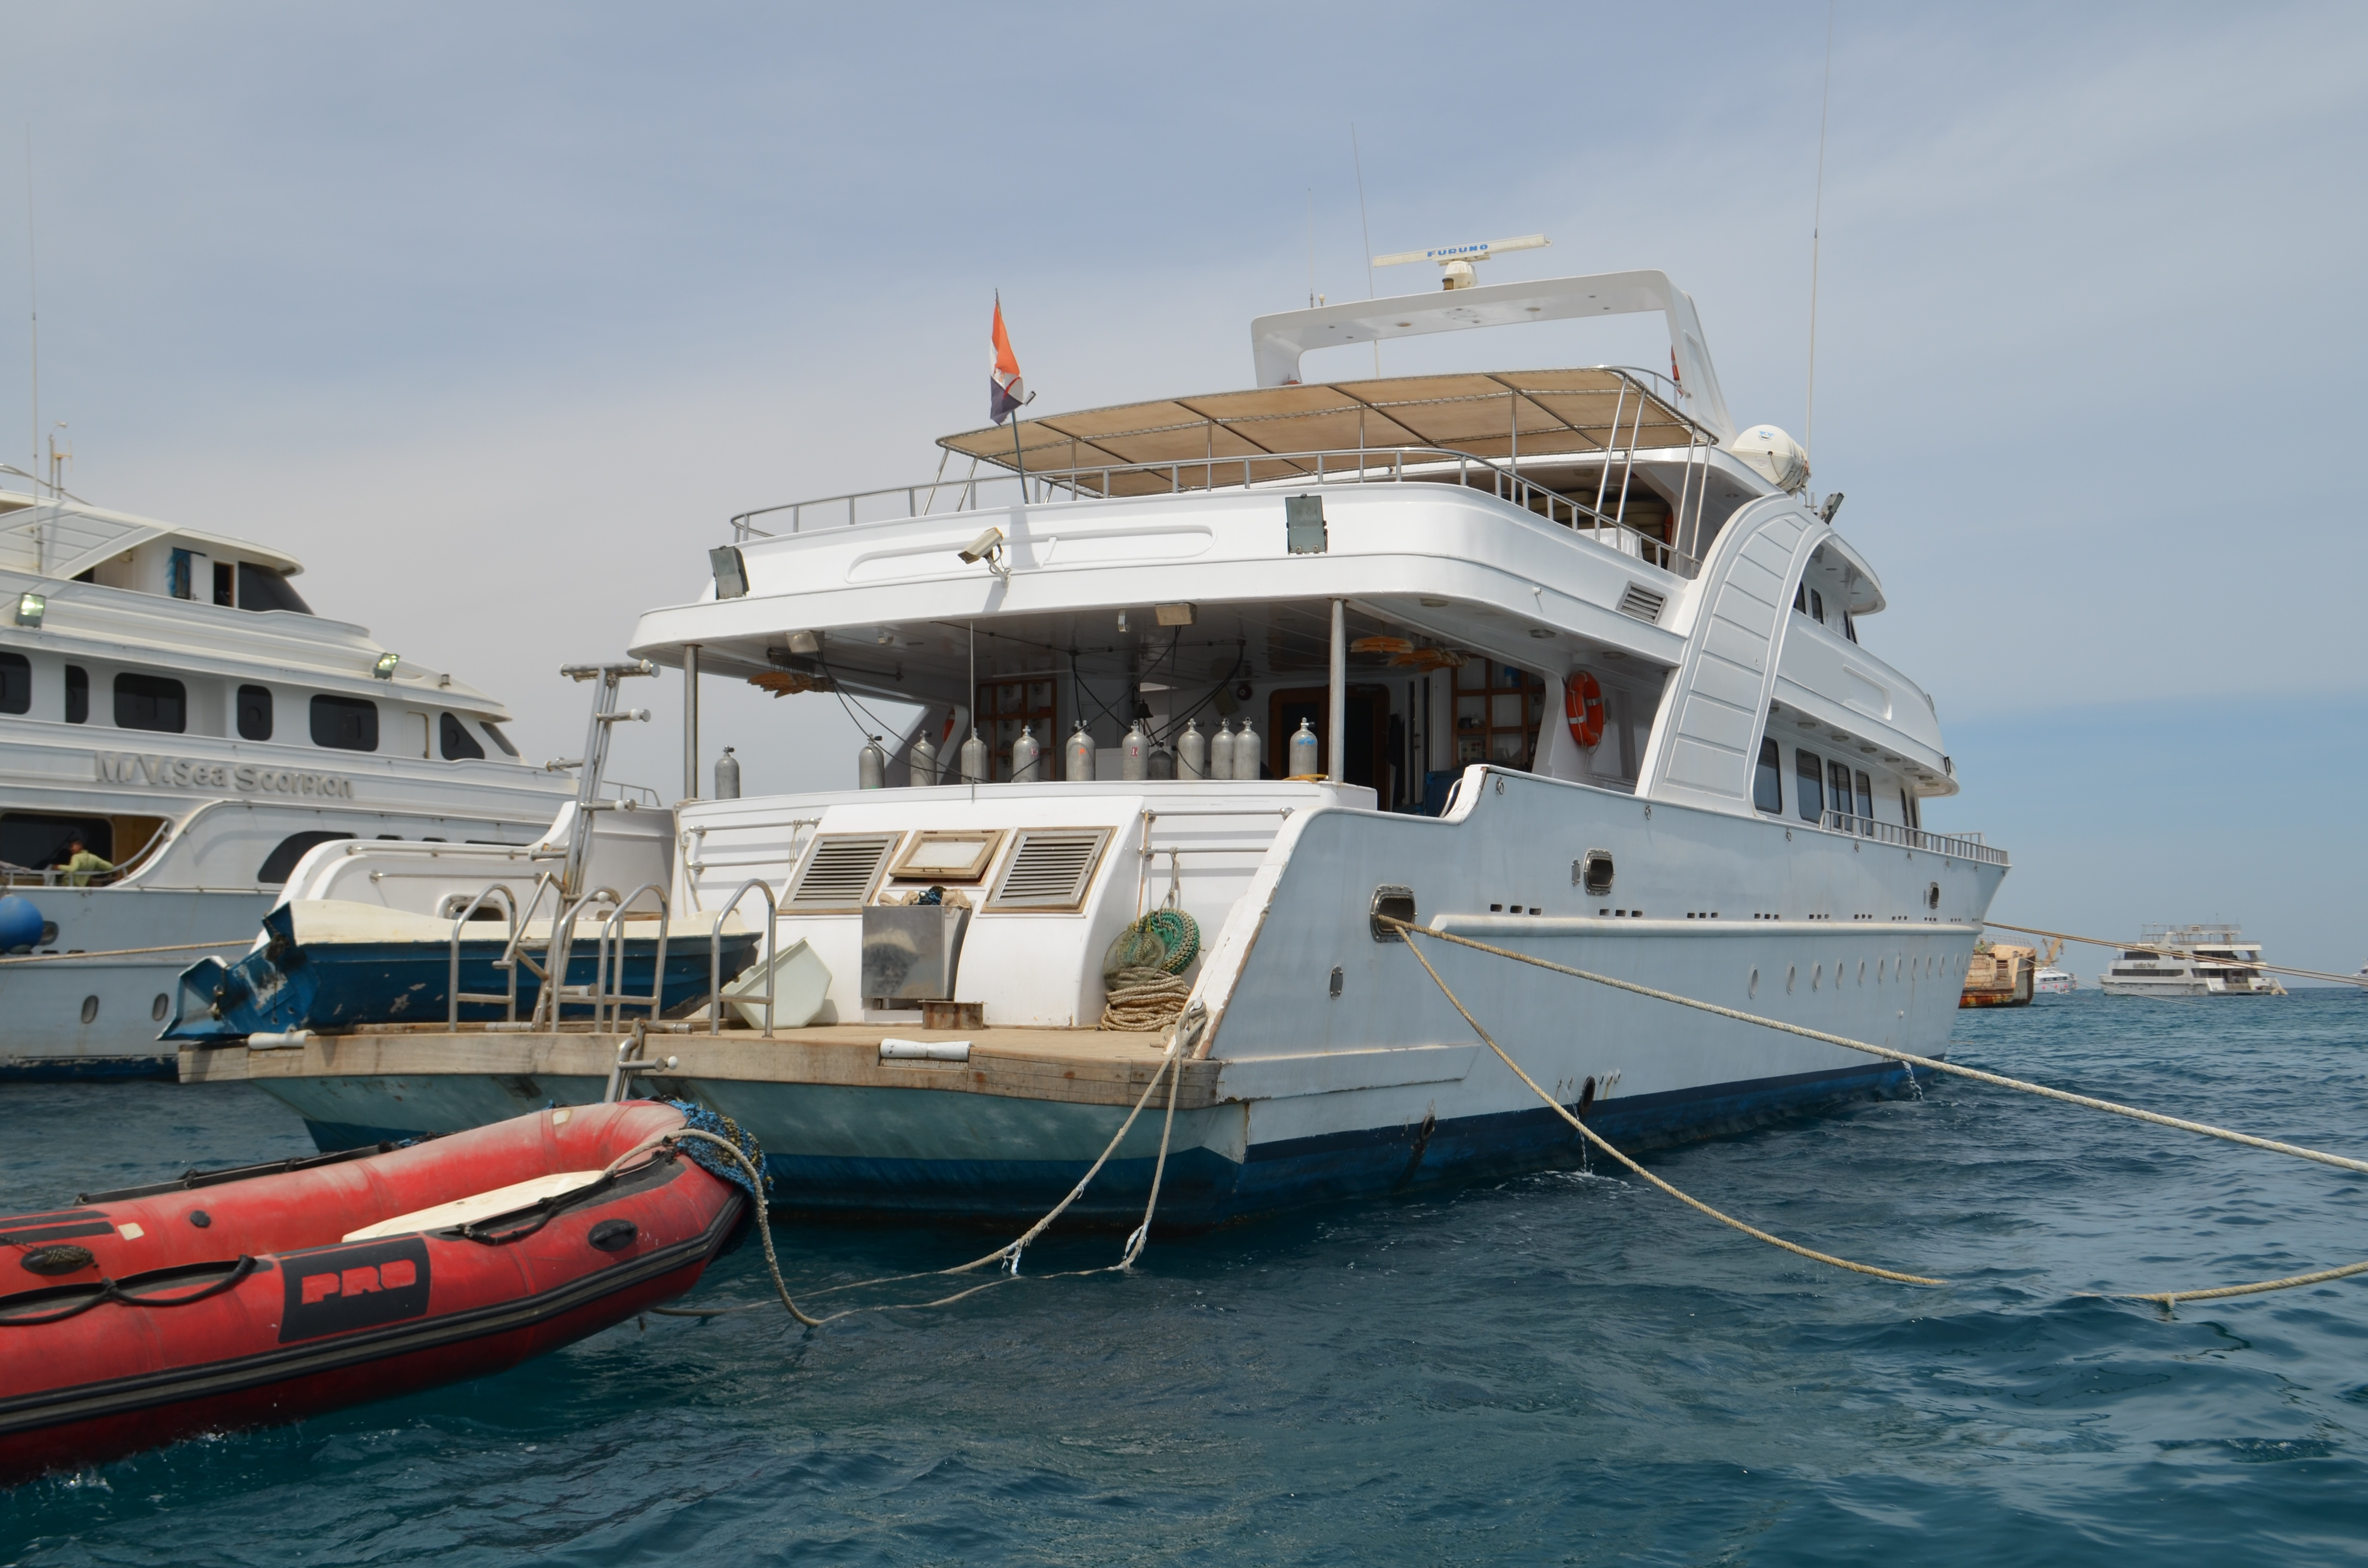 used diving boat for safary